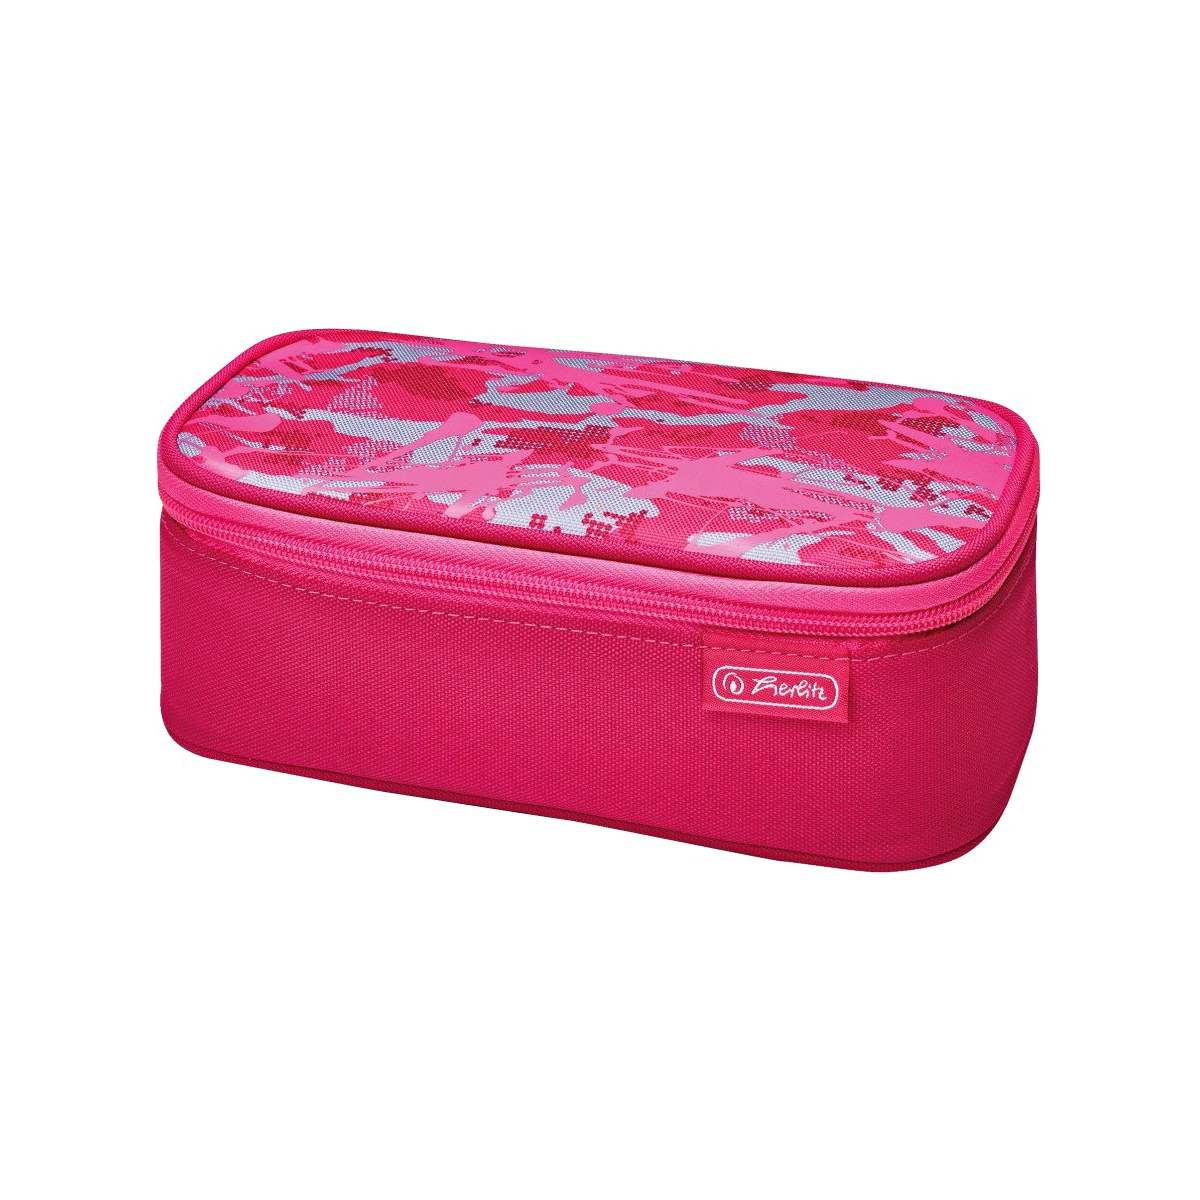 Penar Necessaire, Be.Bag Beat Box, Camouflage Pink, Herlitz, 50015252